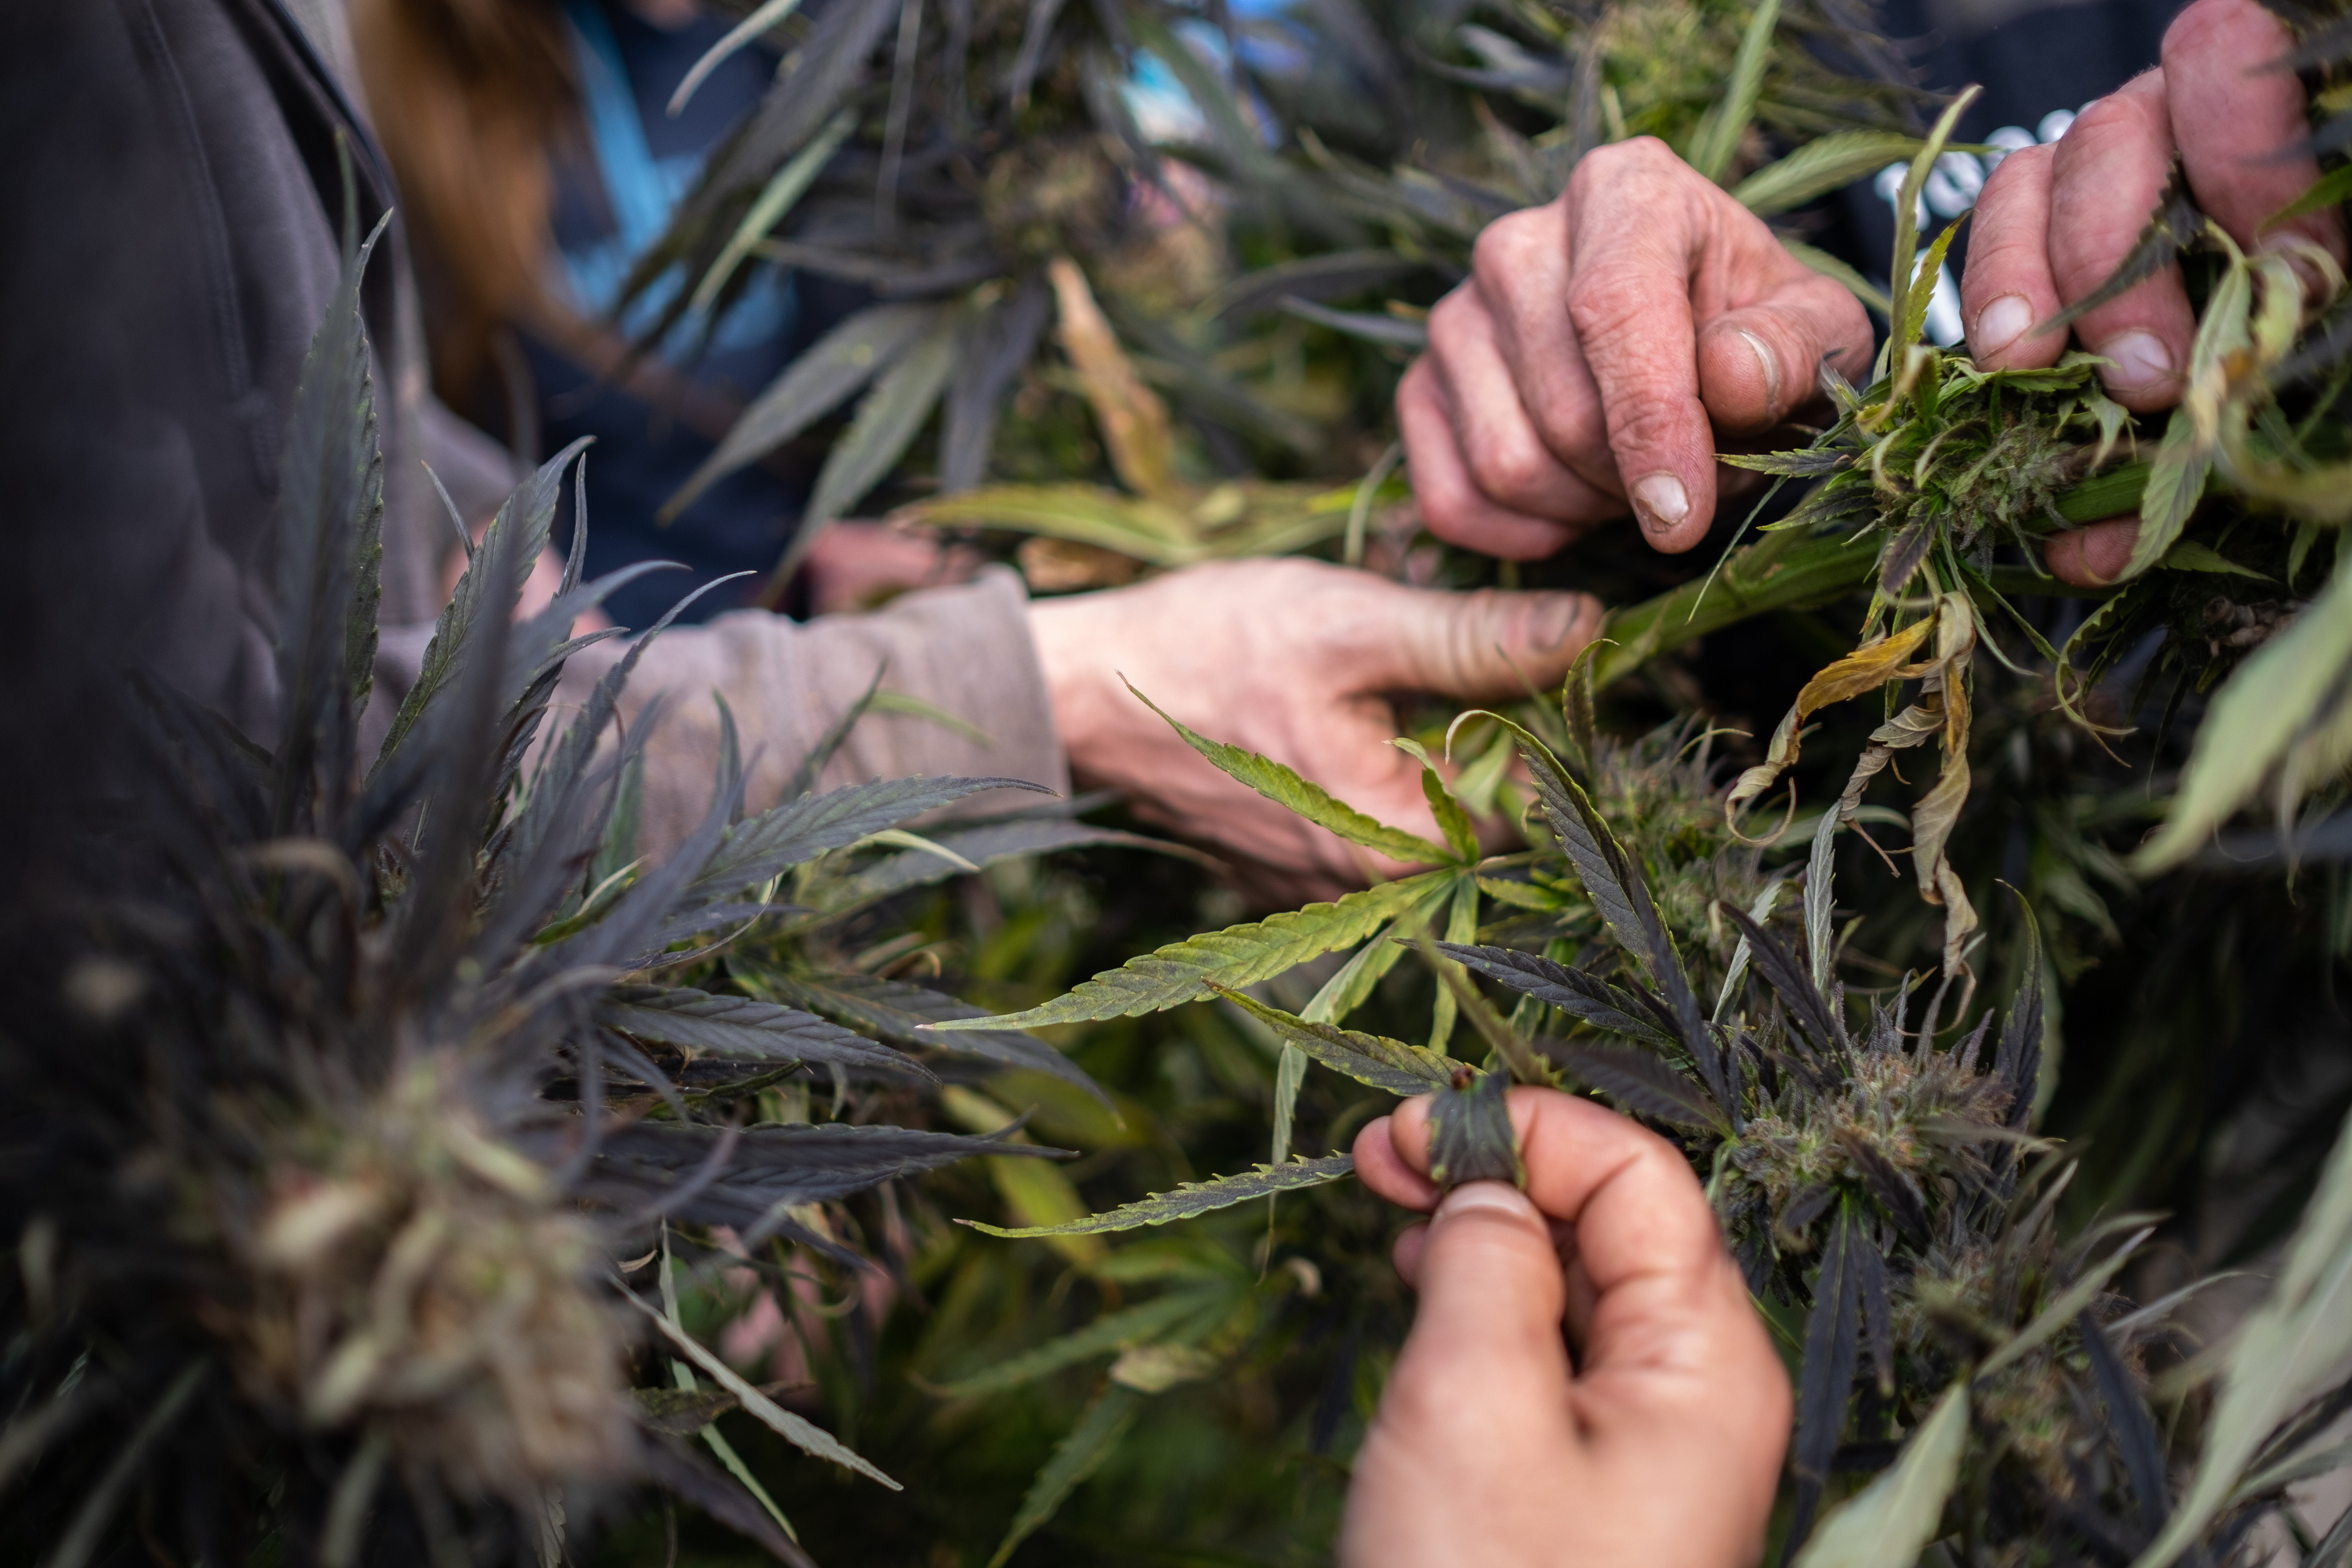 George shows festival-goers different parts of the hemp plant.